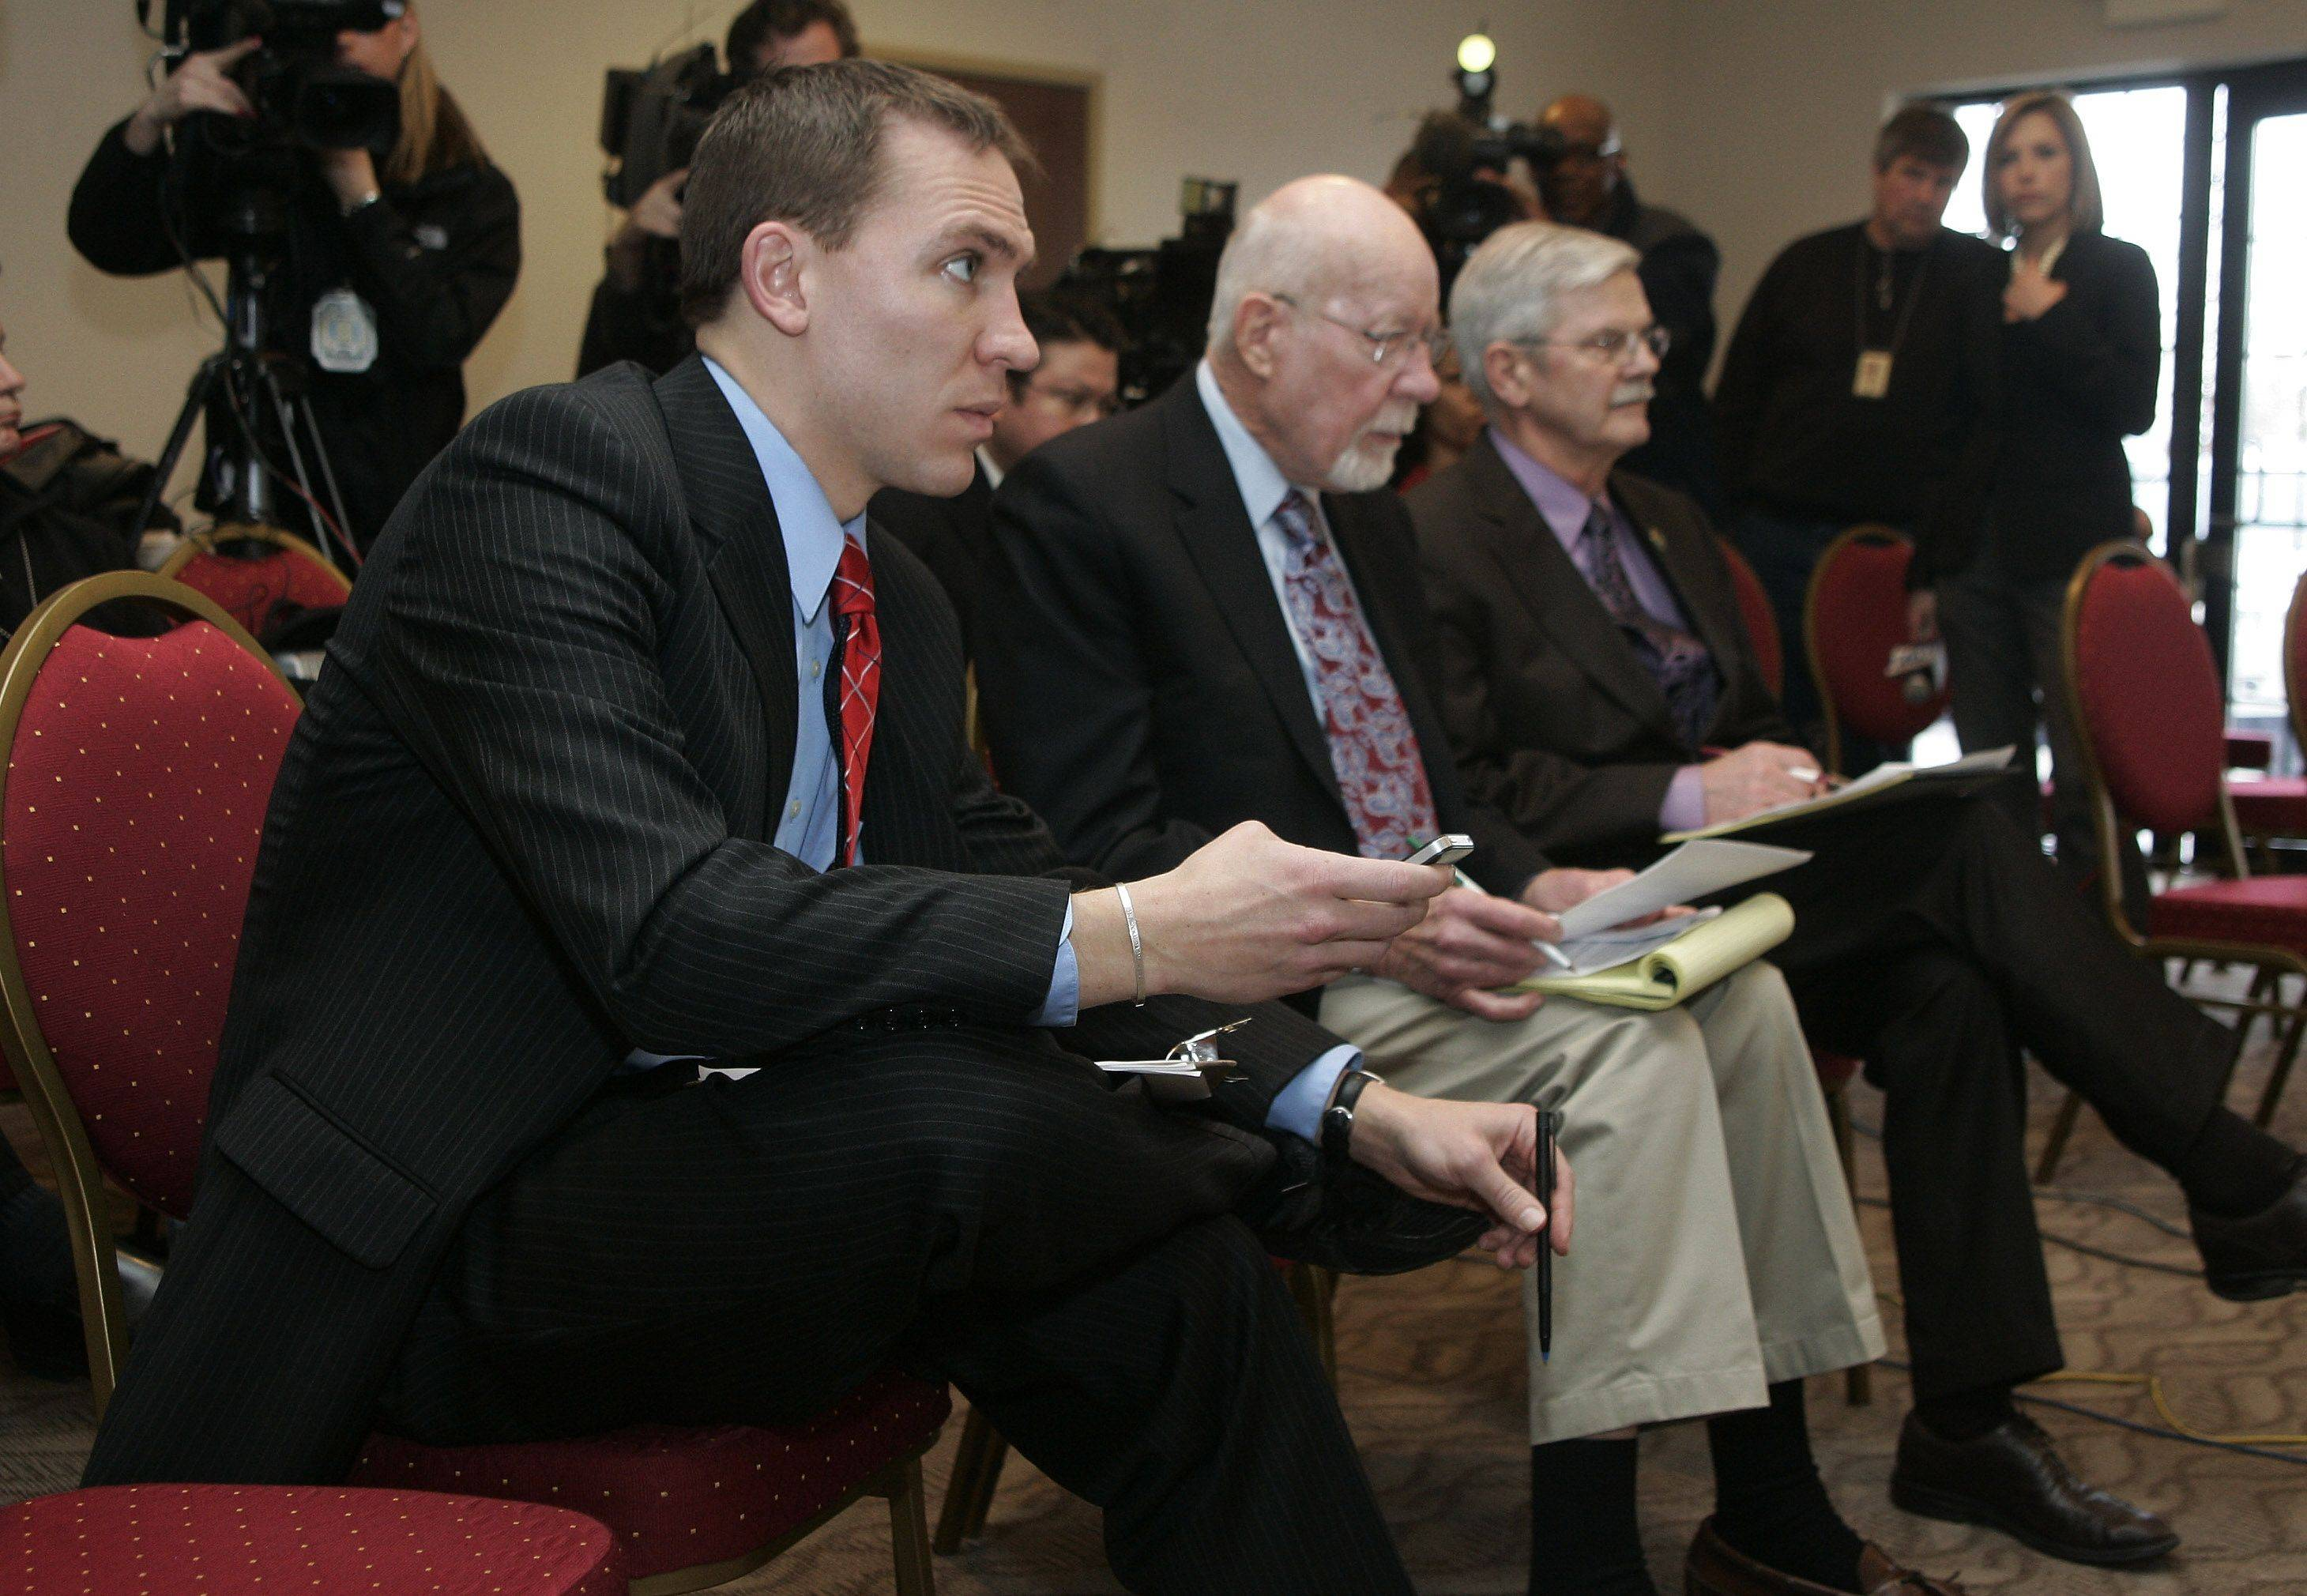 AWOL Wisconsin Democratic state senators Chris Larson, left, and Mark Miller gathered at Grayslake's Comfort Suites to watch Gov. Scott Walker give a budget speech to the legislature Tuesday.